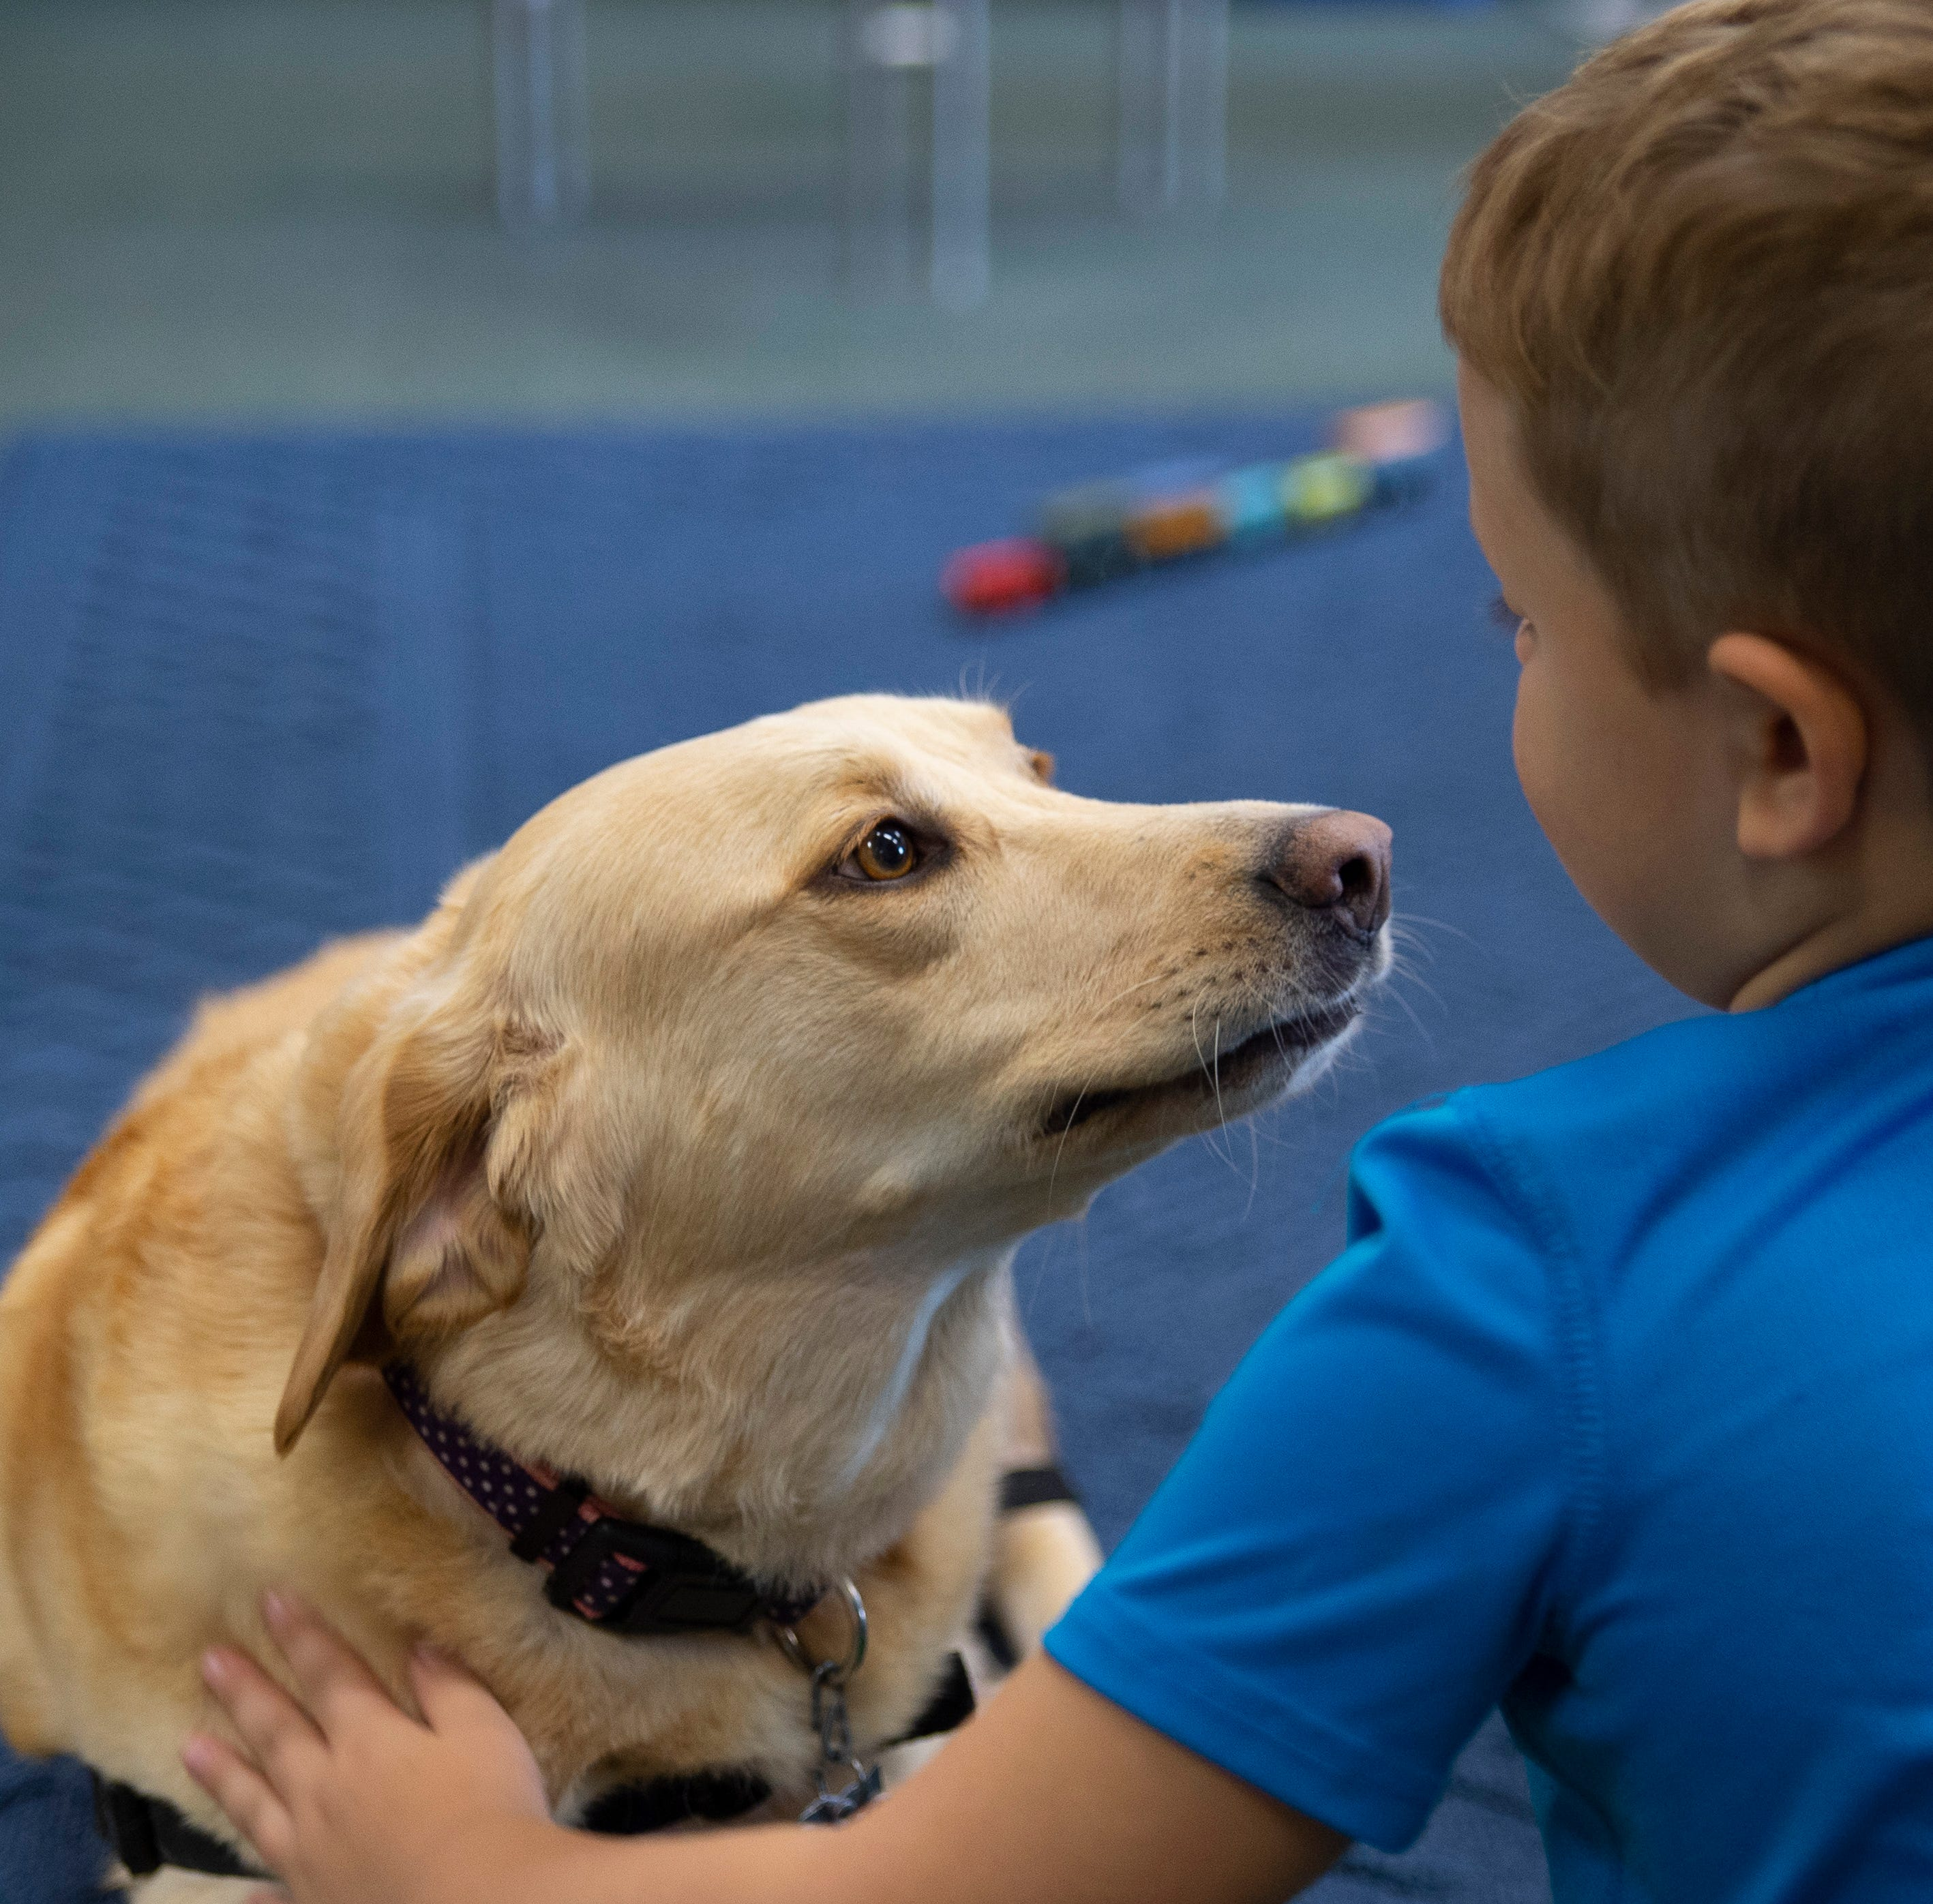 Ivy Tech preschool's therapy dog provides emotional, social support to classroom